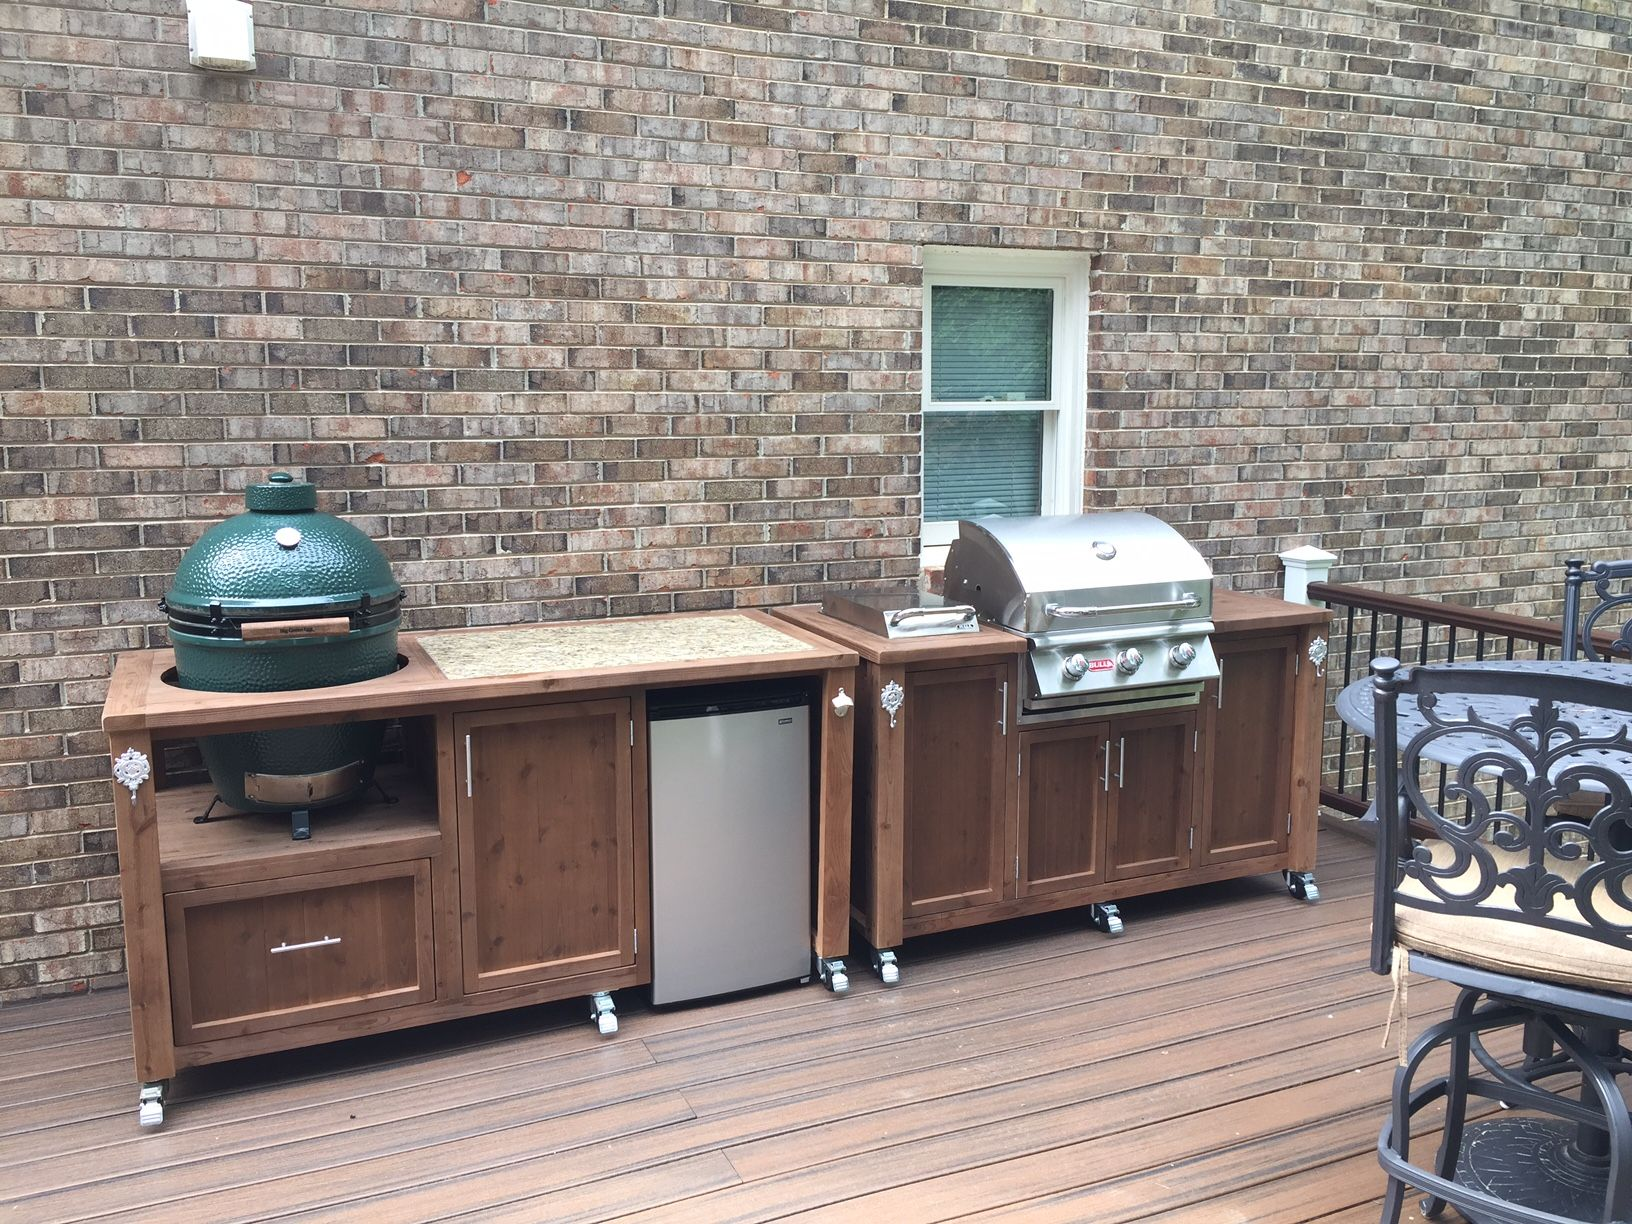 Dual Grill Chill Kitchen For Big Green Egg Bull Gas Grill Mini Fridge We Customize Outdoor Kitchen Grill Big Green Egg Outdoor Kitchen Outdoor Kitchen